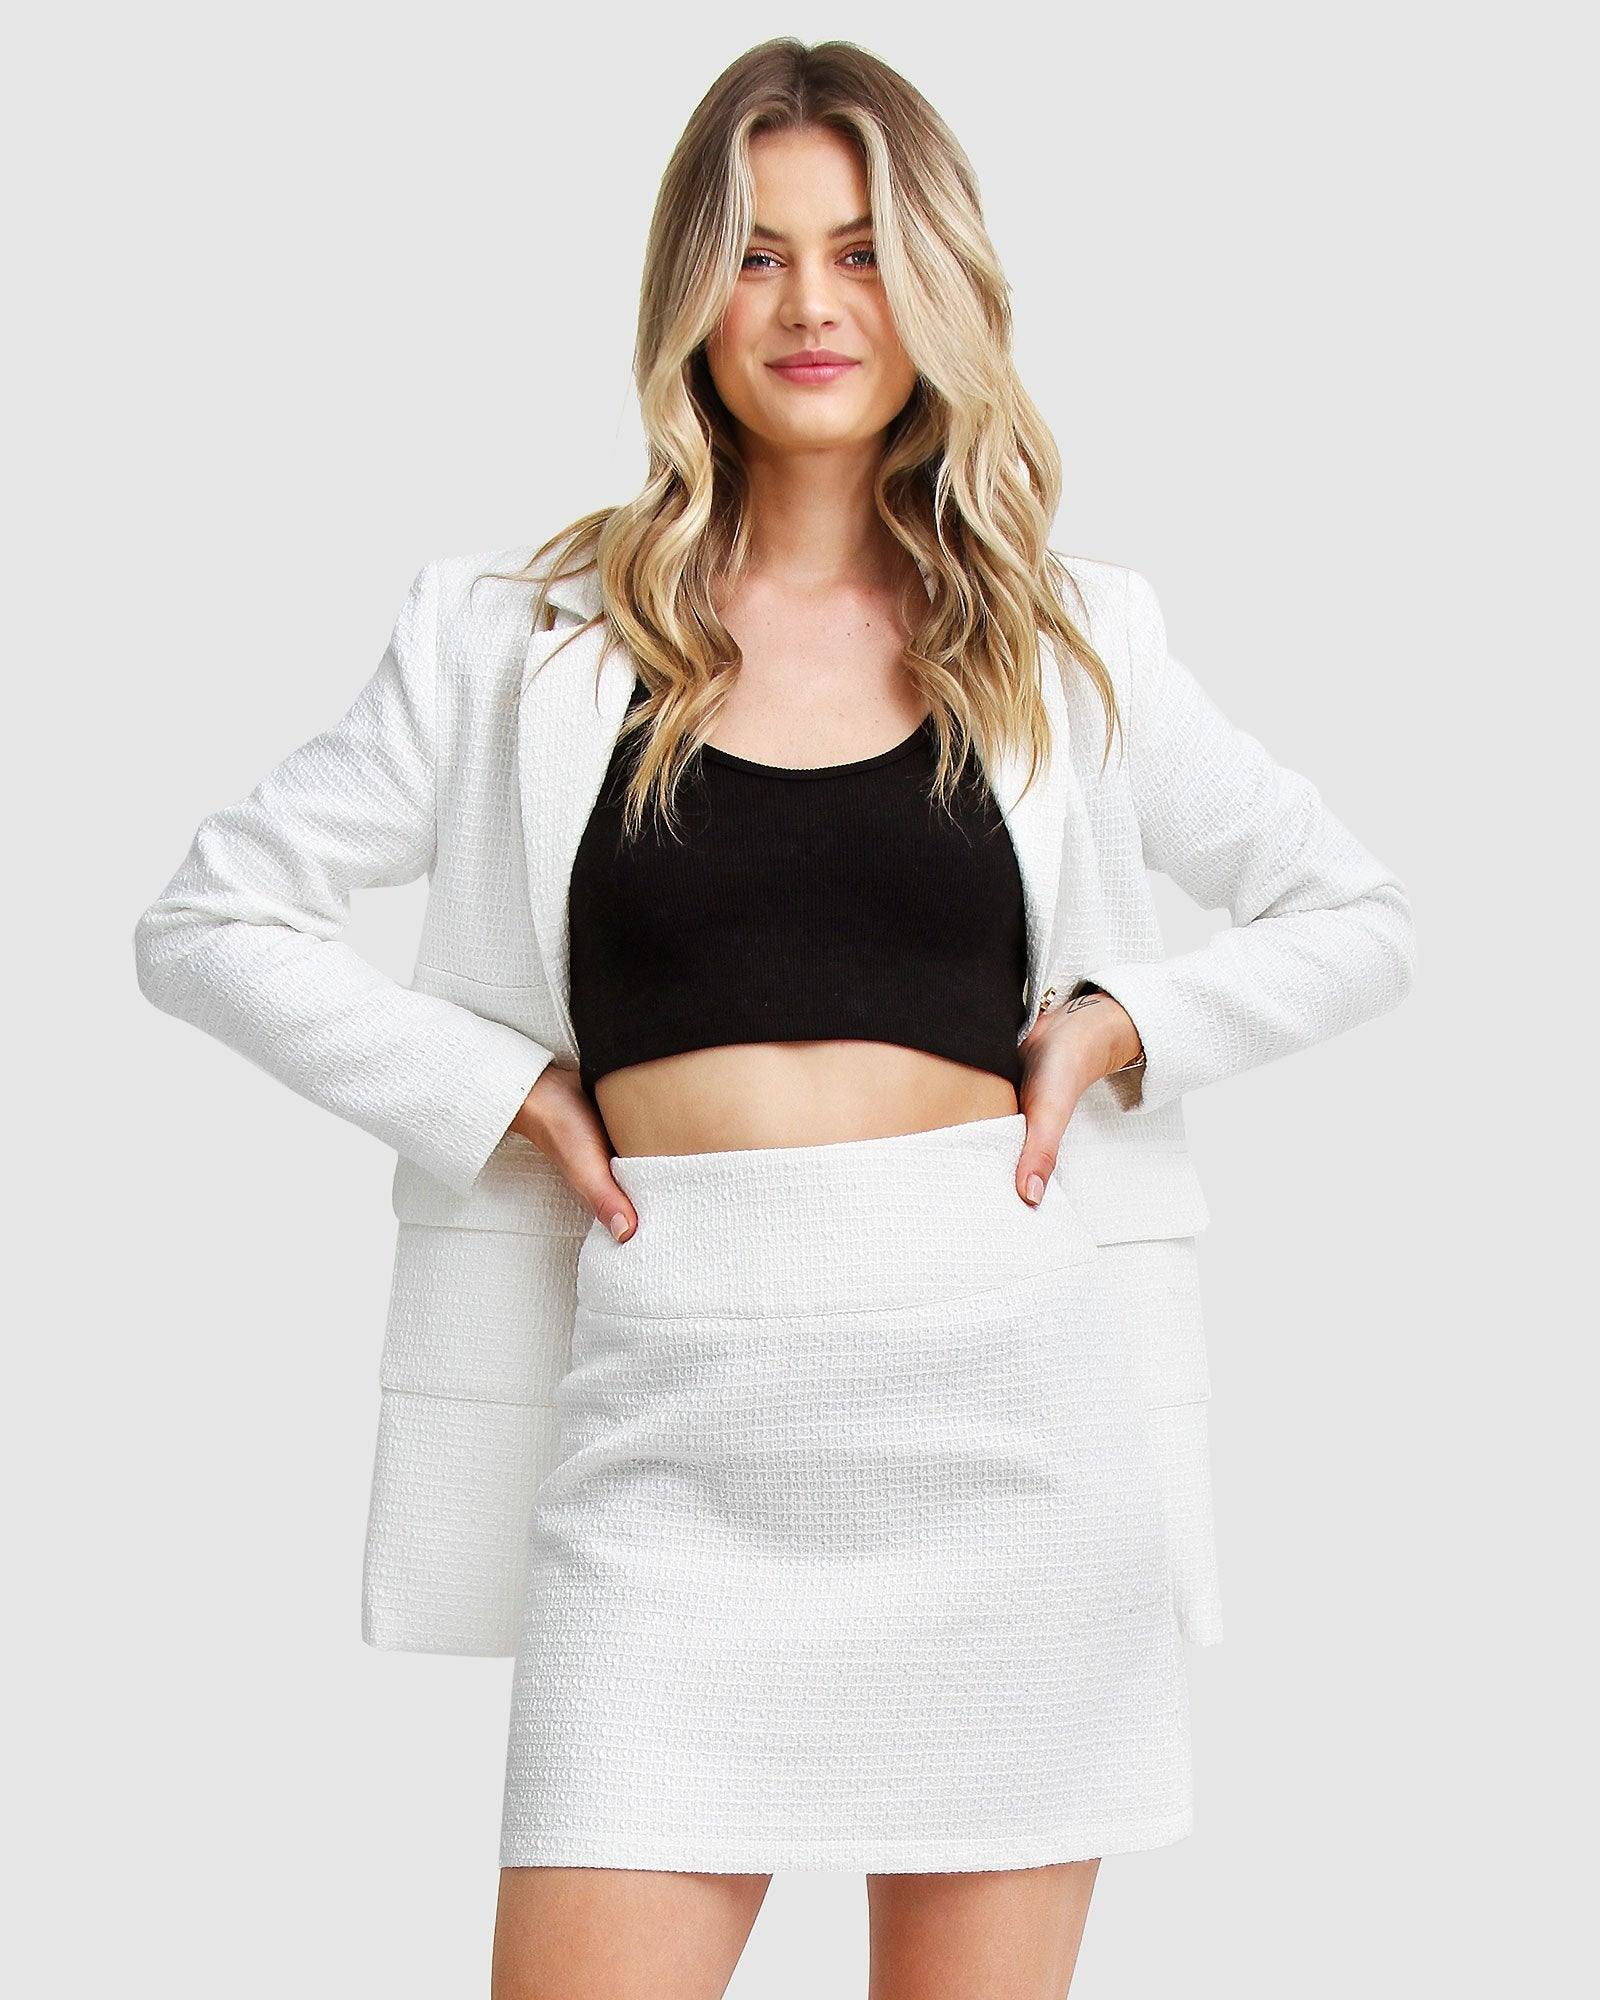 Paddington Fair Skirt - White